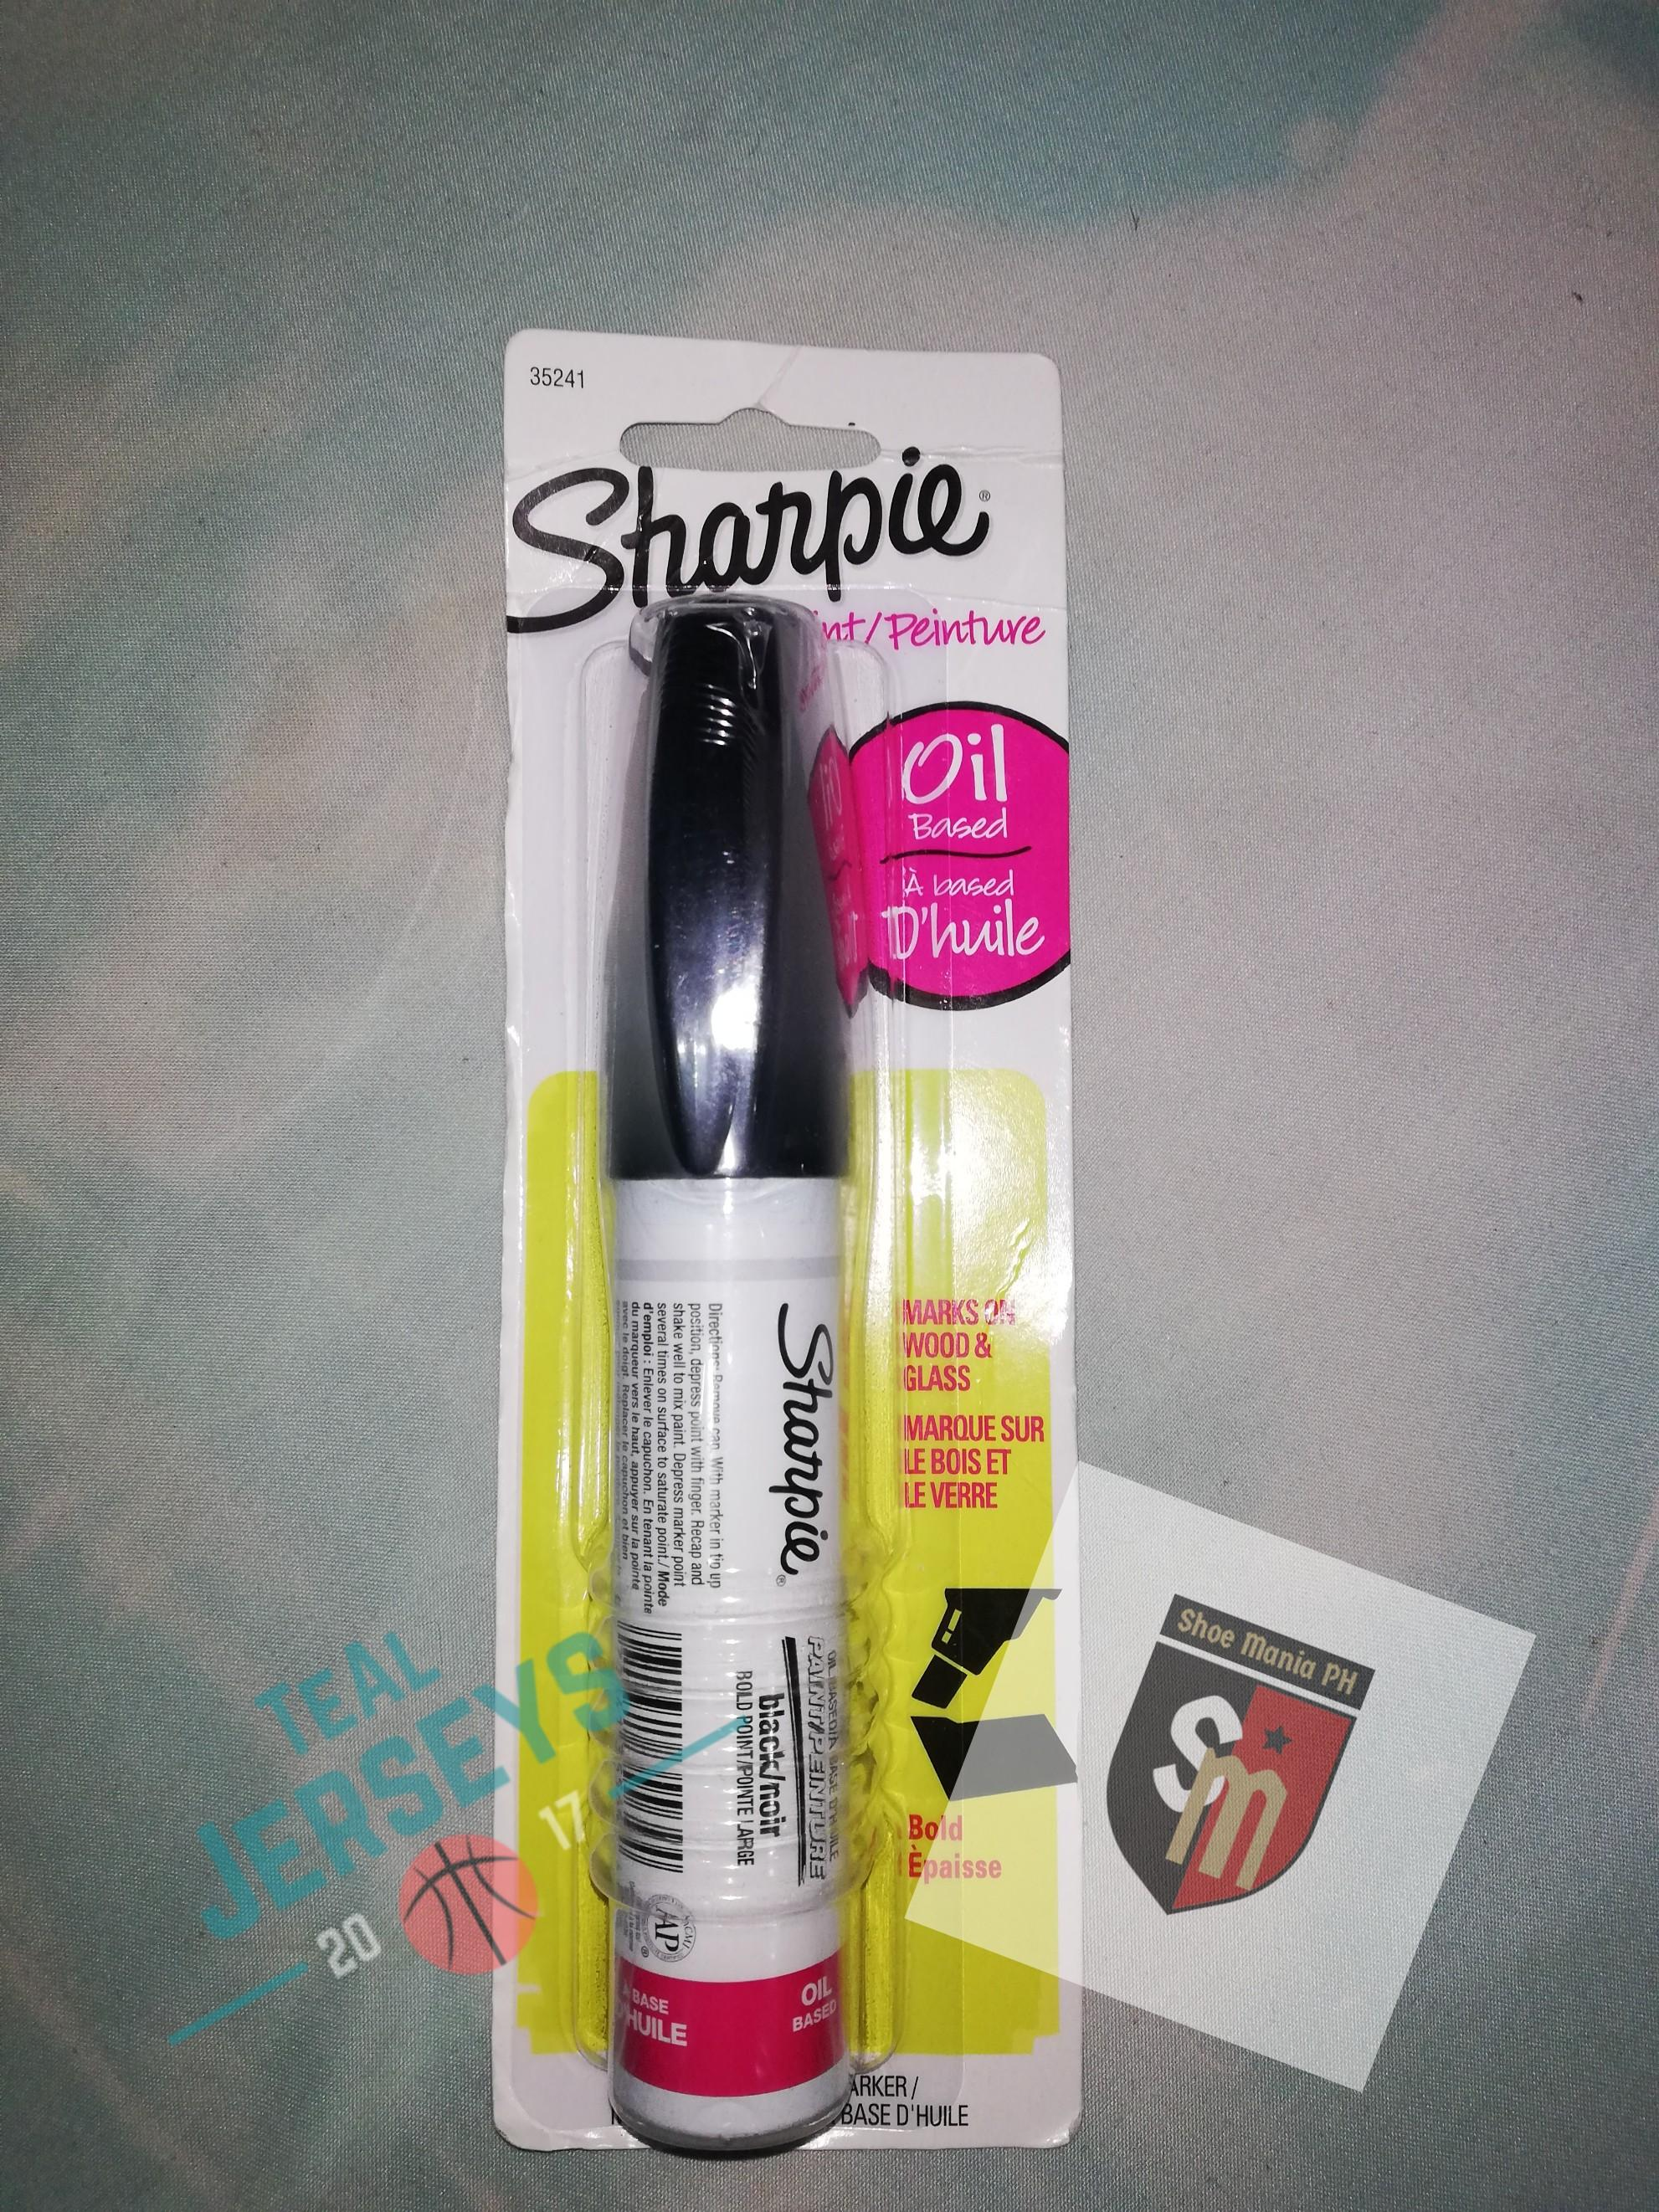 Sharpie Philippines Sharpie Price List Colored Marker Pen For